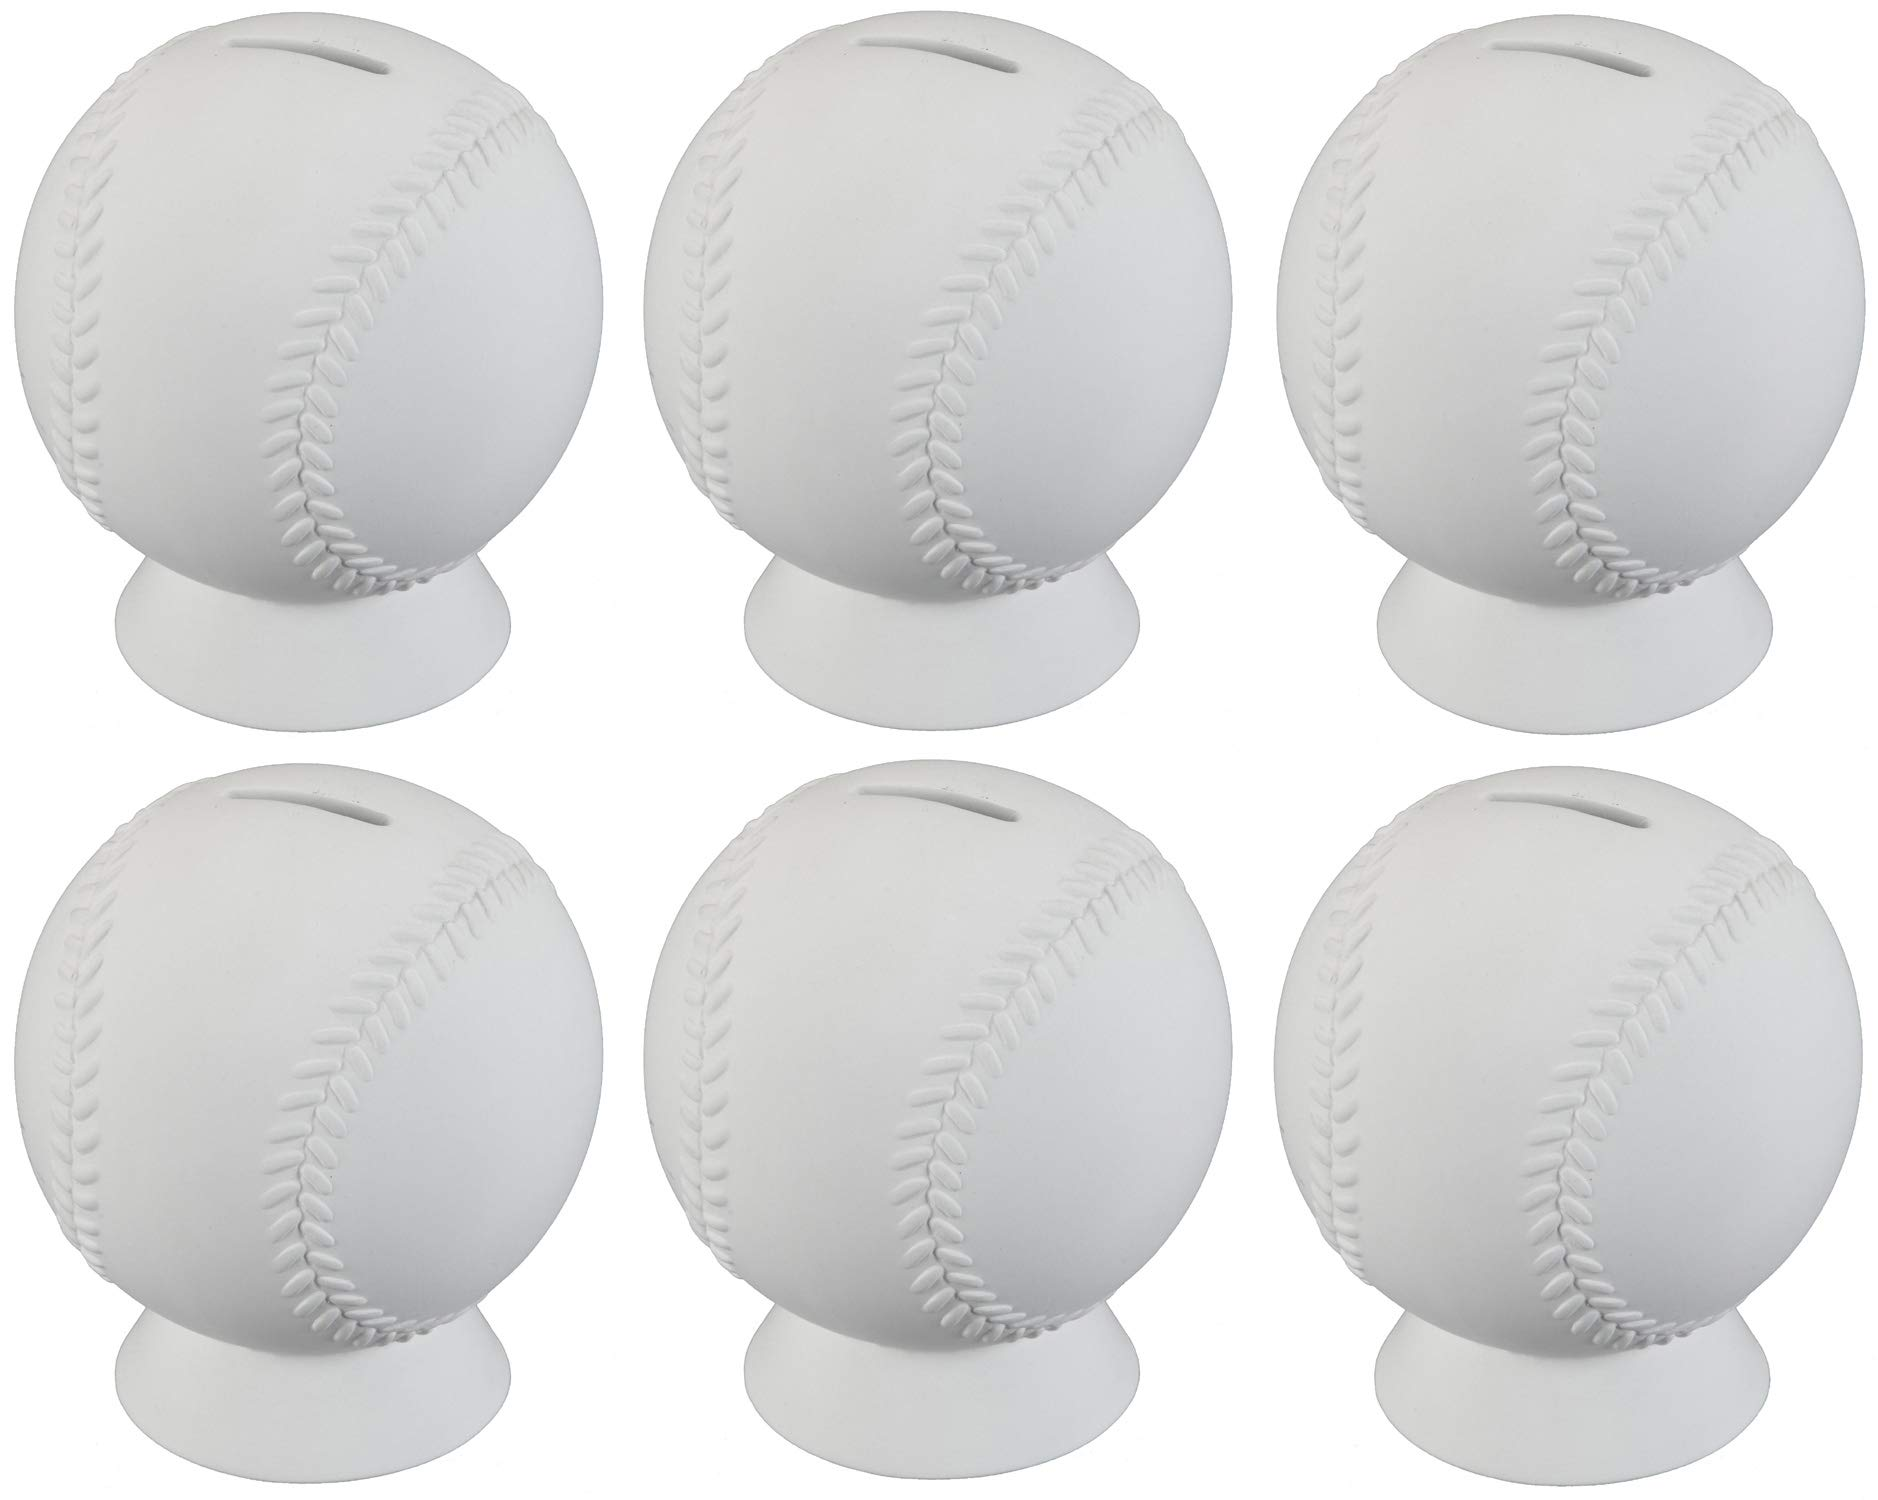 Creative Hobbies Baseball Bank, Case of 6, 5.5 Inch Tall, Unfinished Ceramic Bisque, with How to Paint Your Own Pottery Booklet